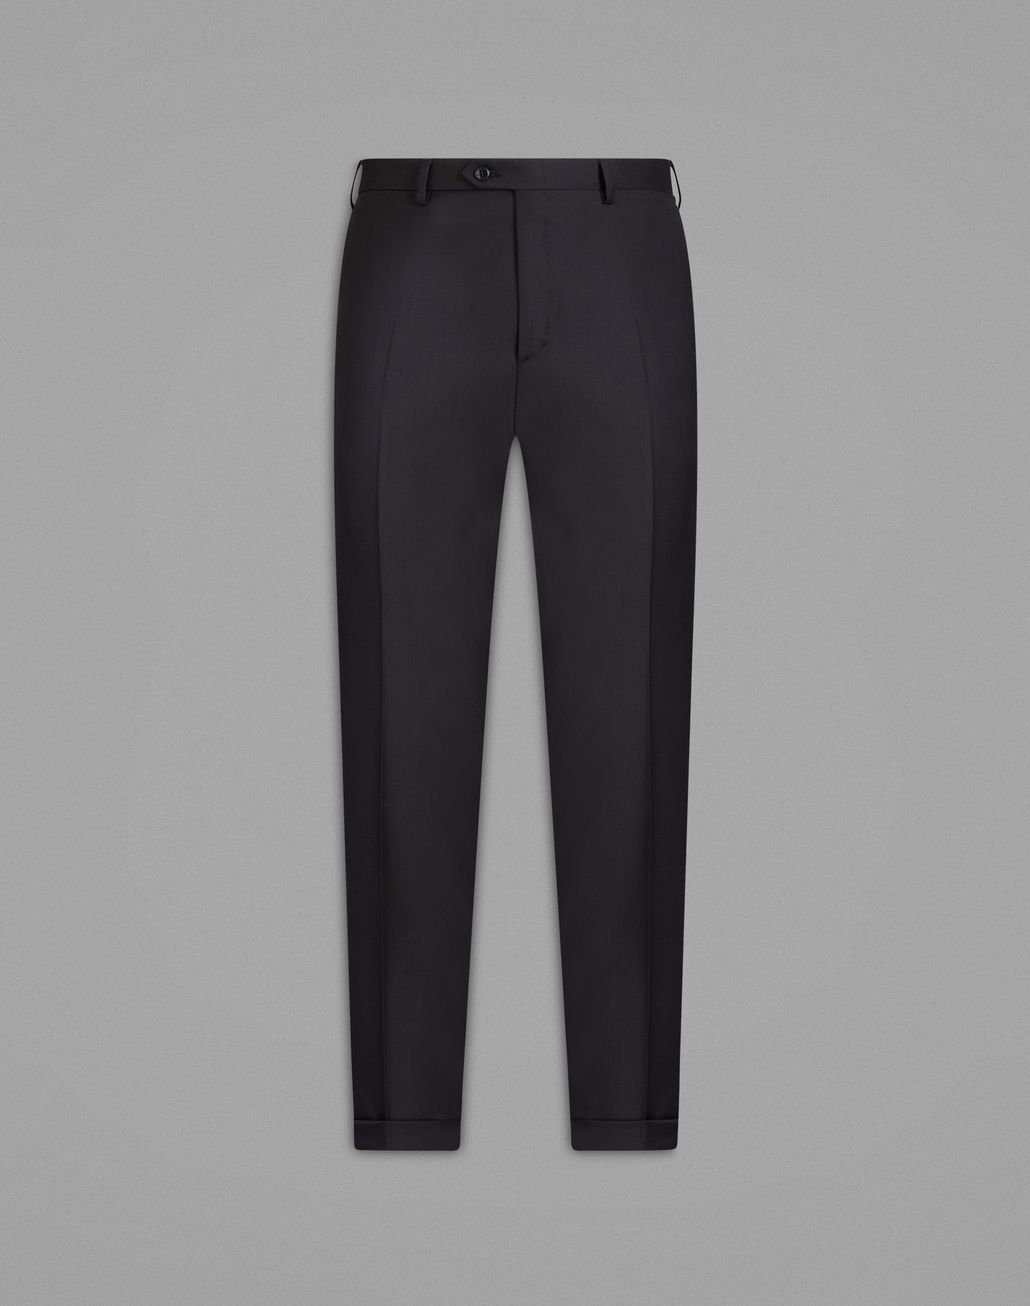 BRIONI 'Essential' Black Tigullio Pants Trousers Man f